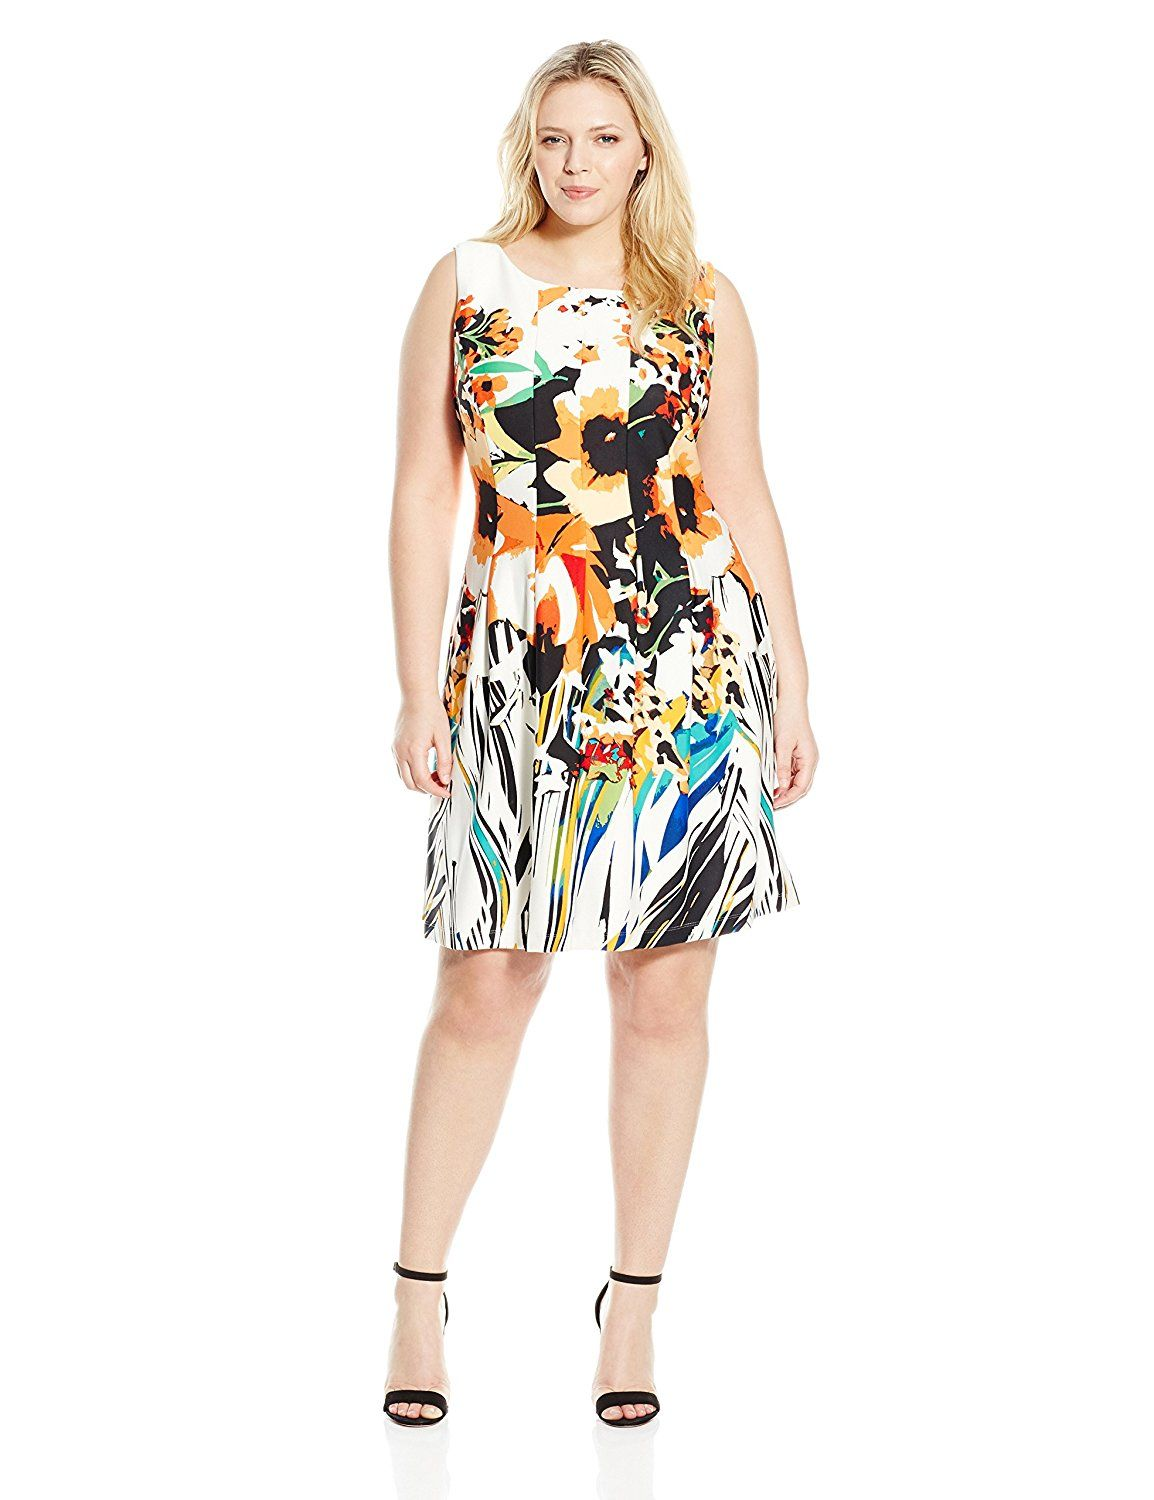 7b4250a8f2c60 Gabby Skye Women s Plus-Size Abstract Floral Printed Fit-and-Flare Dress    See this awesome image   Women s dresses